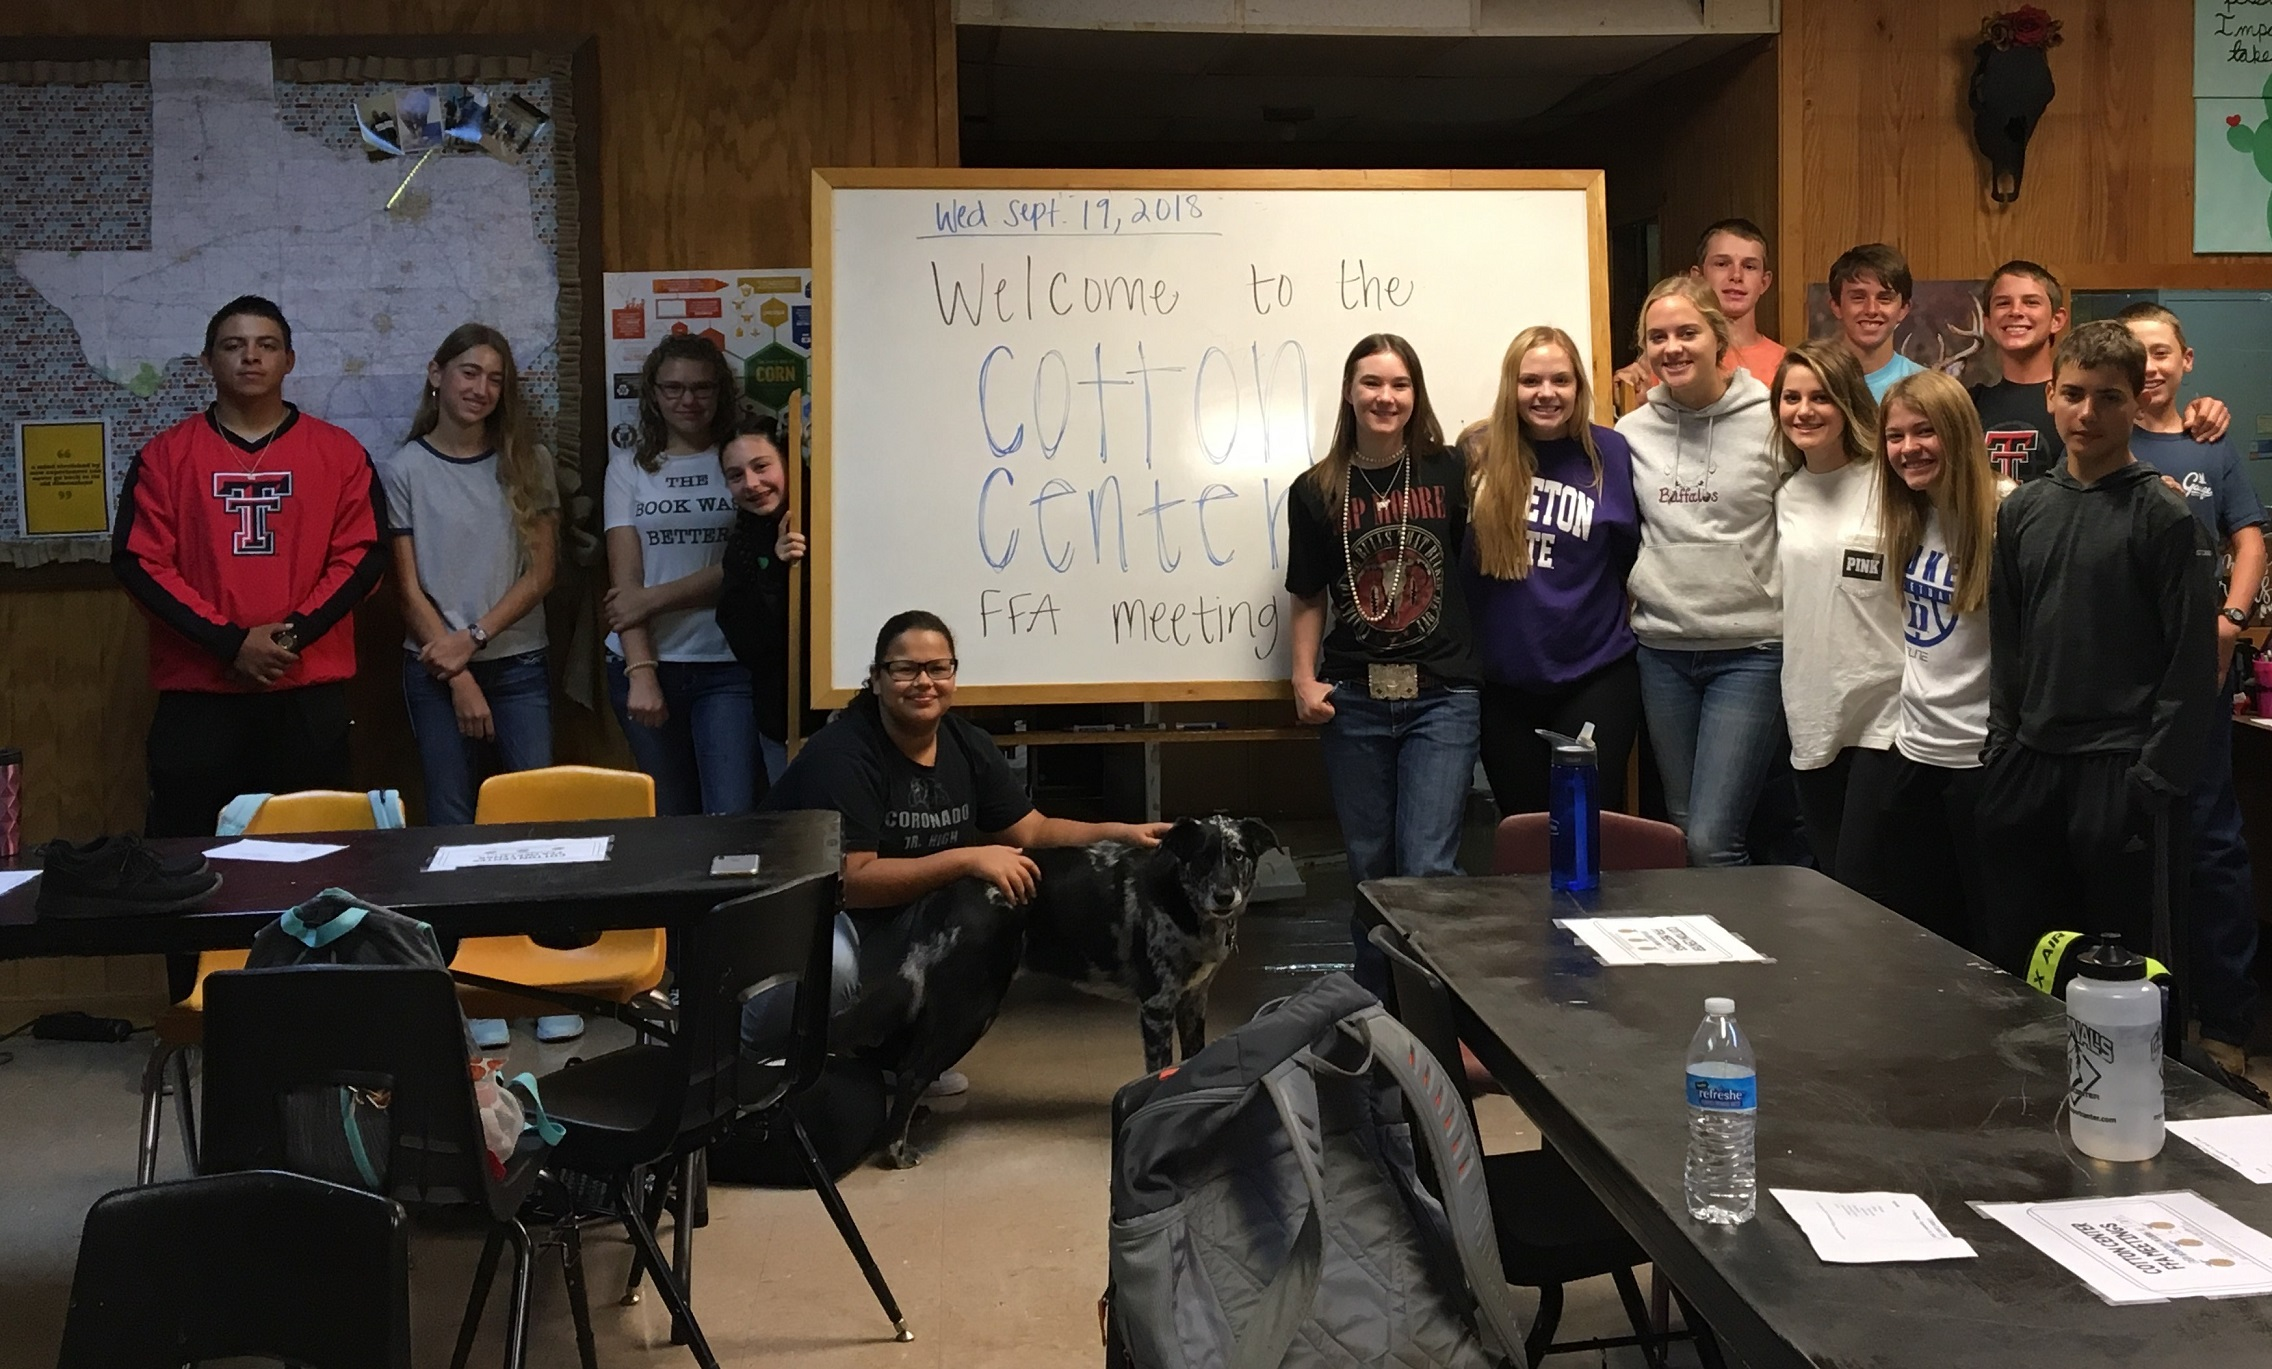 1st FFA meeting of the year